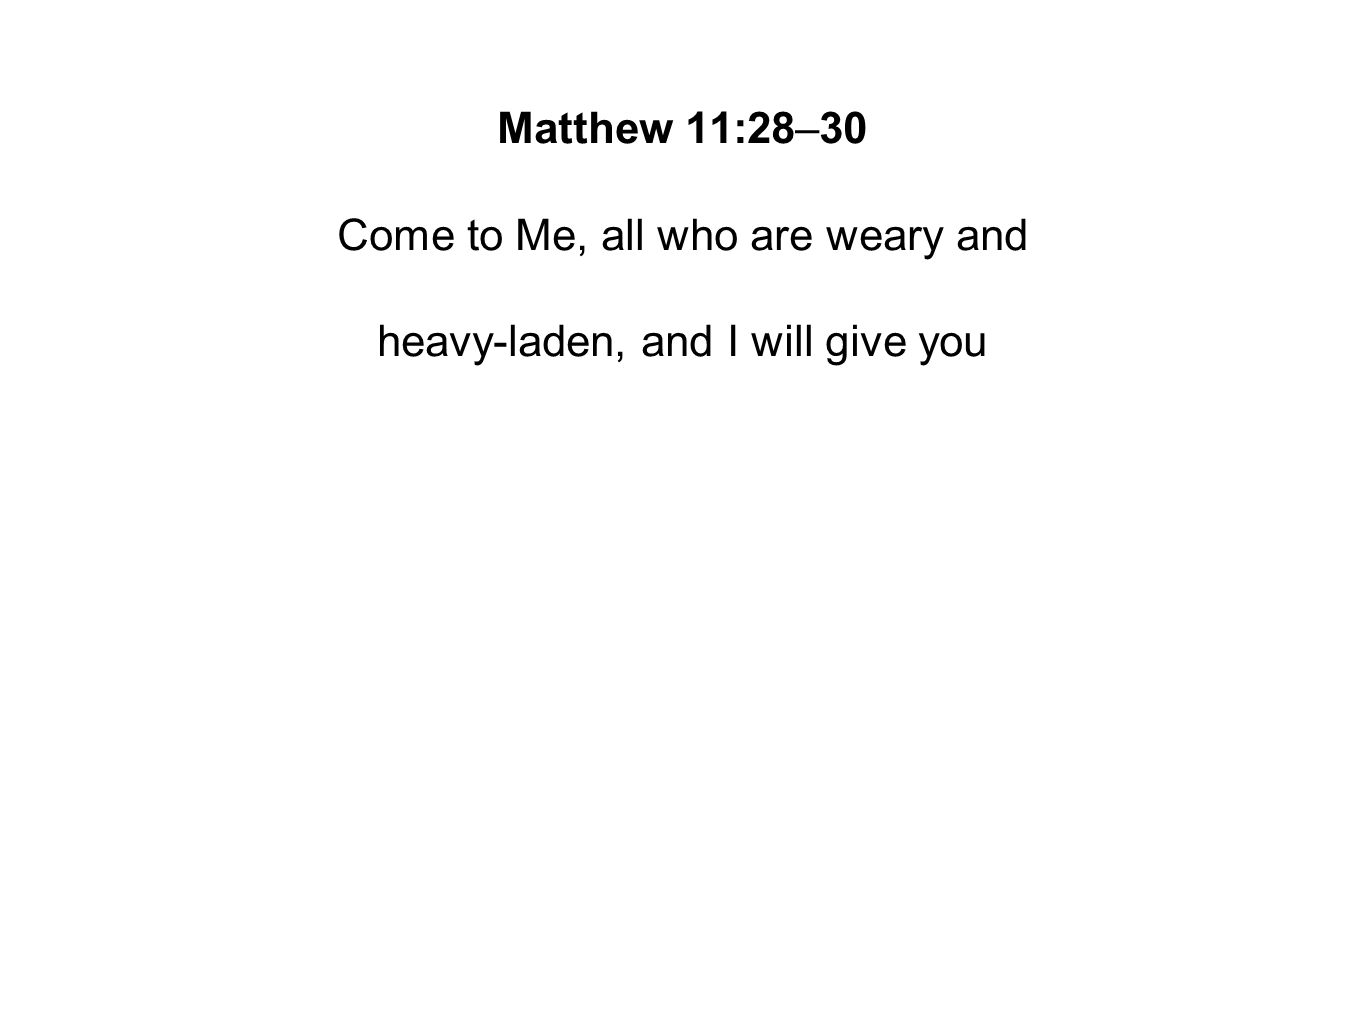 Matthew 11:28–30 Come to Me, all who are weary and heavy-laden, and I will give you